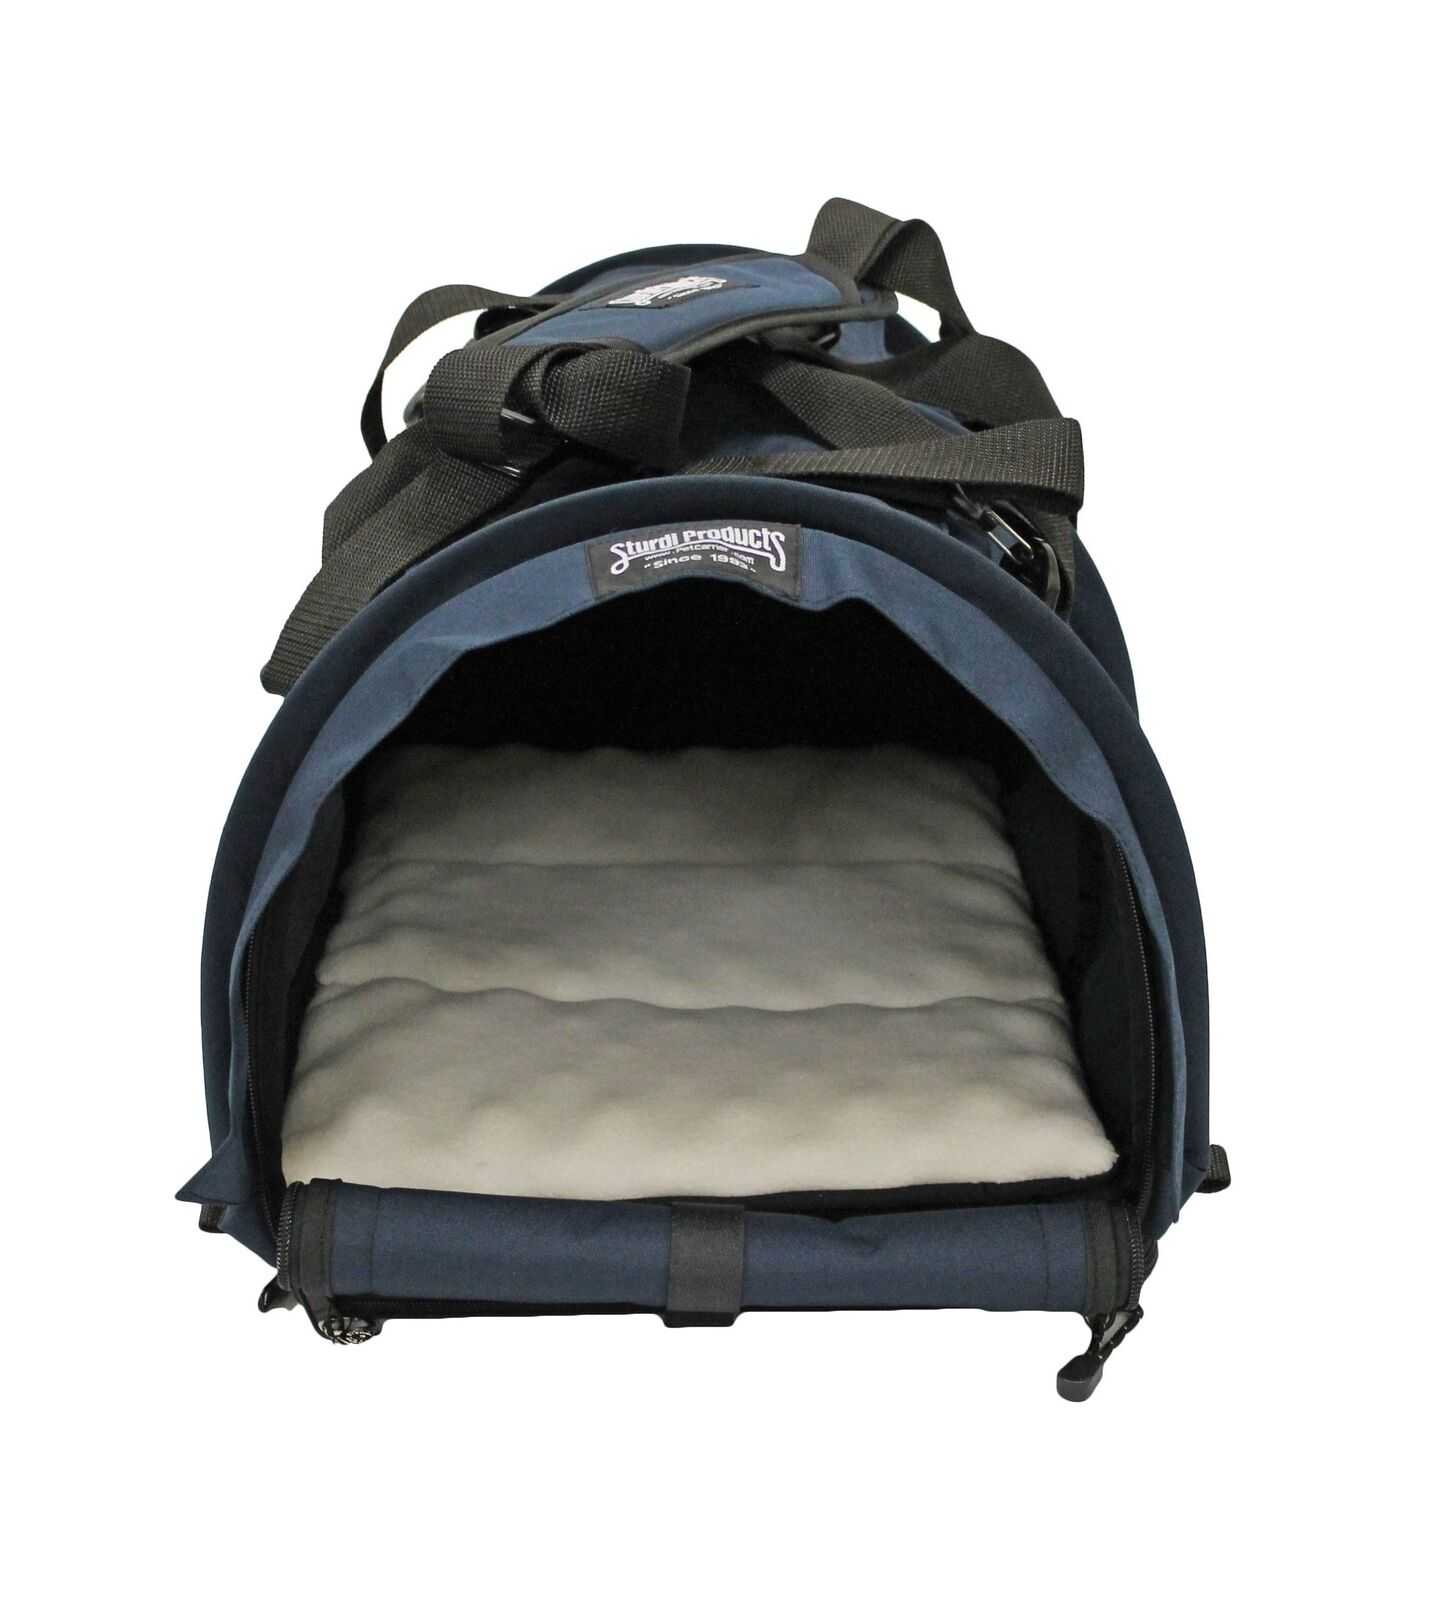 SturdiBag Large Flexible Height Pet Carrier Navy